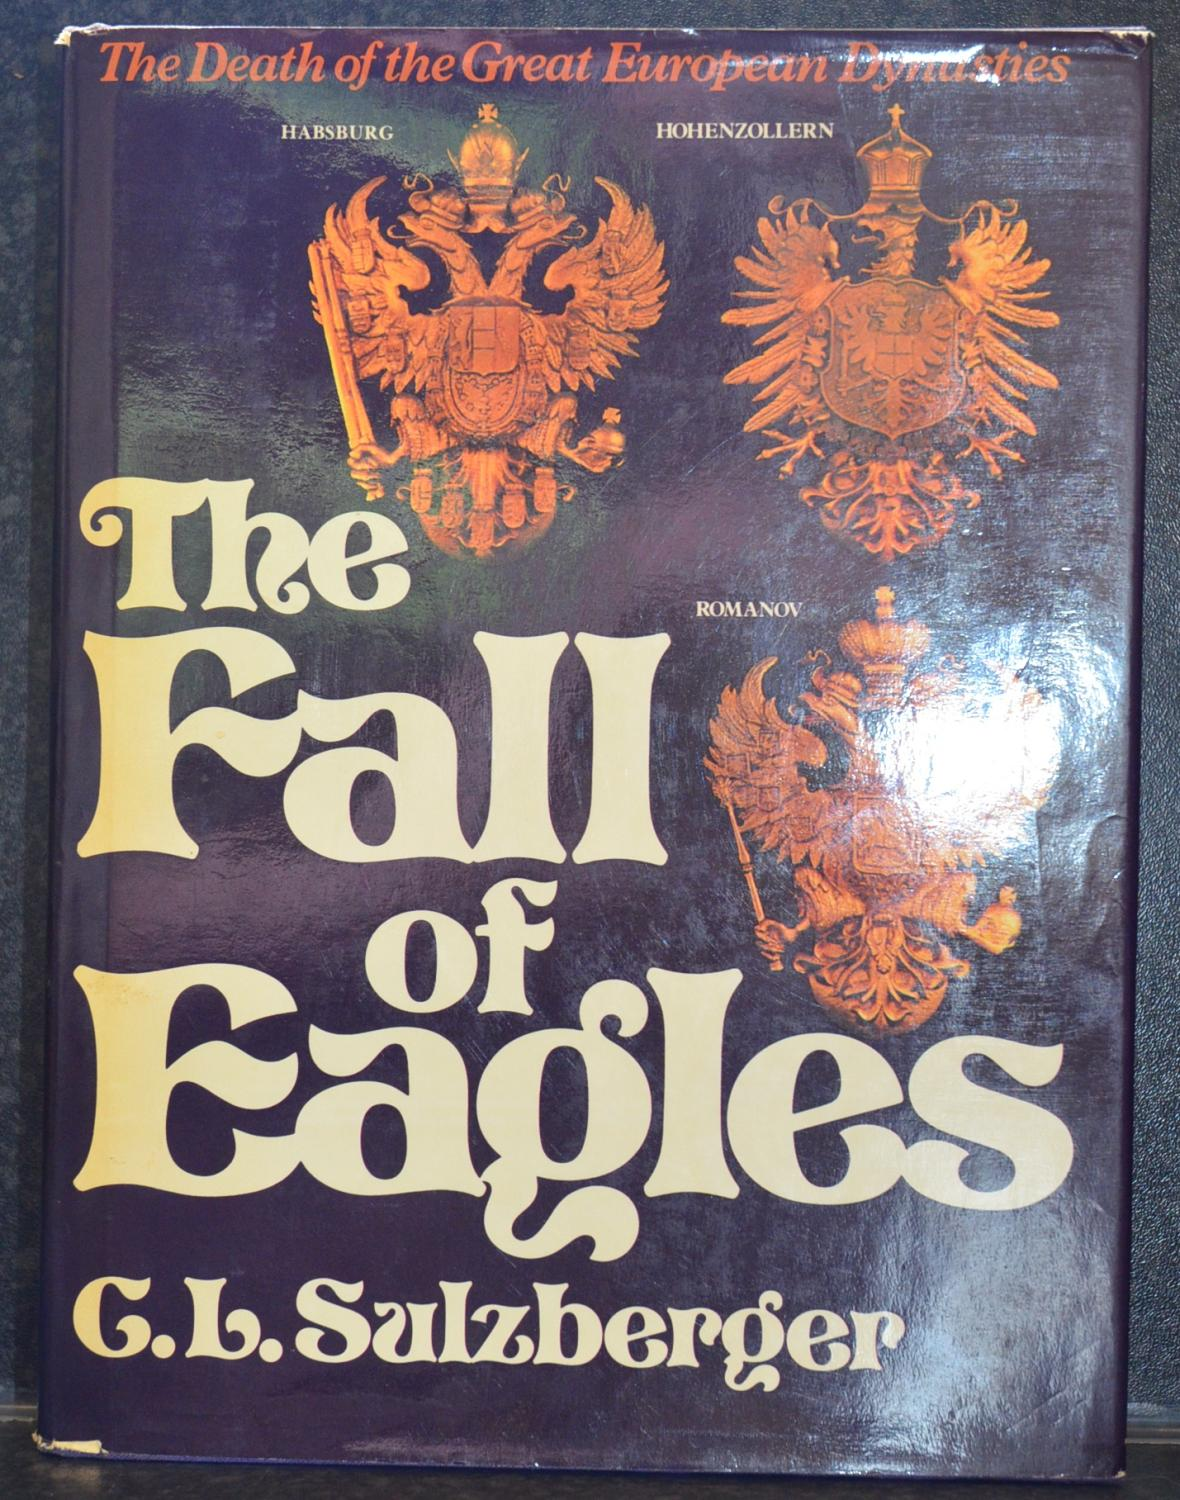 The Fall Of Eagles - Sulzberger, C. L.